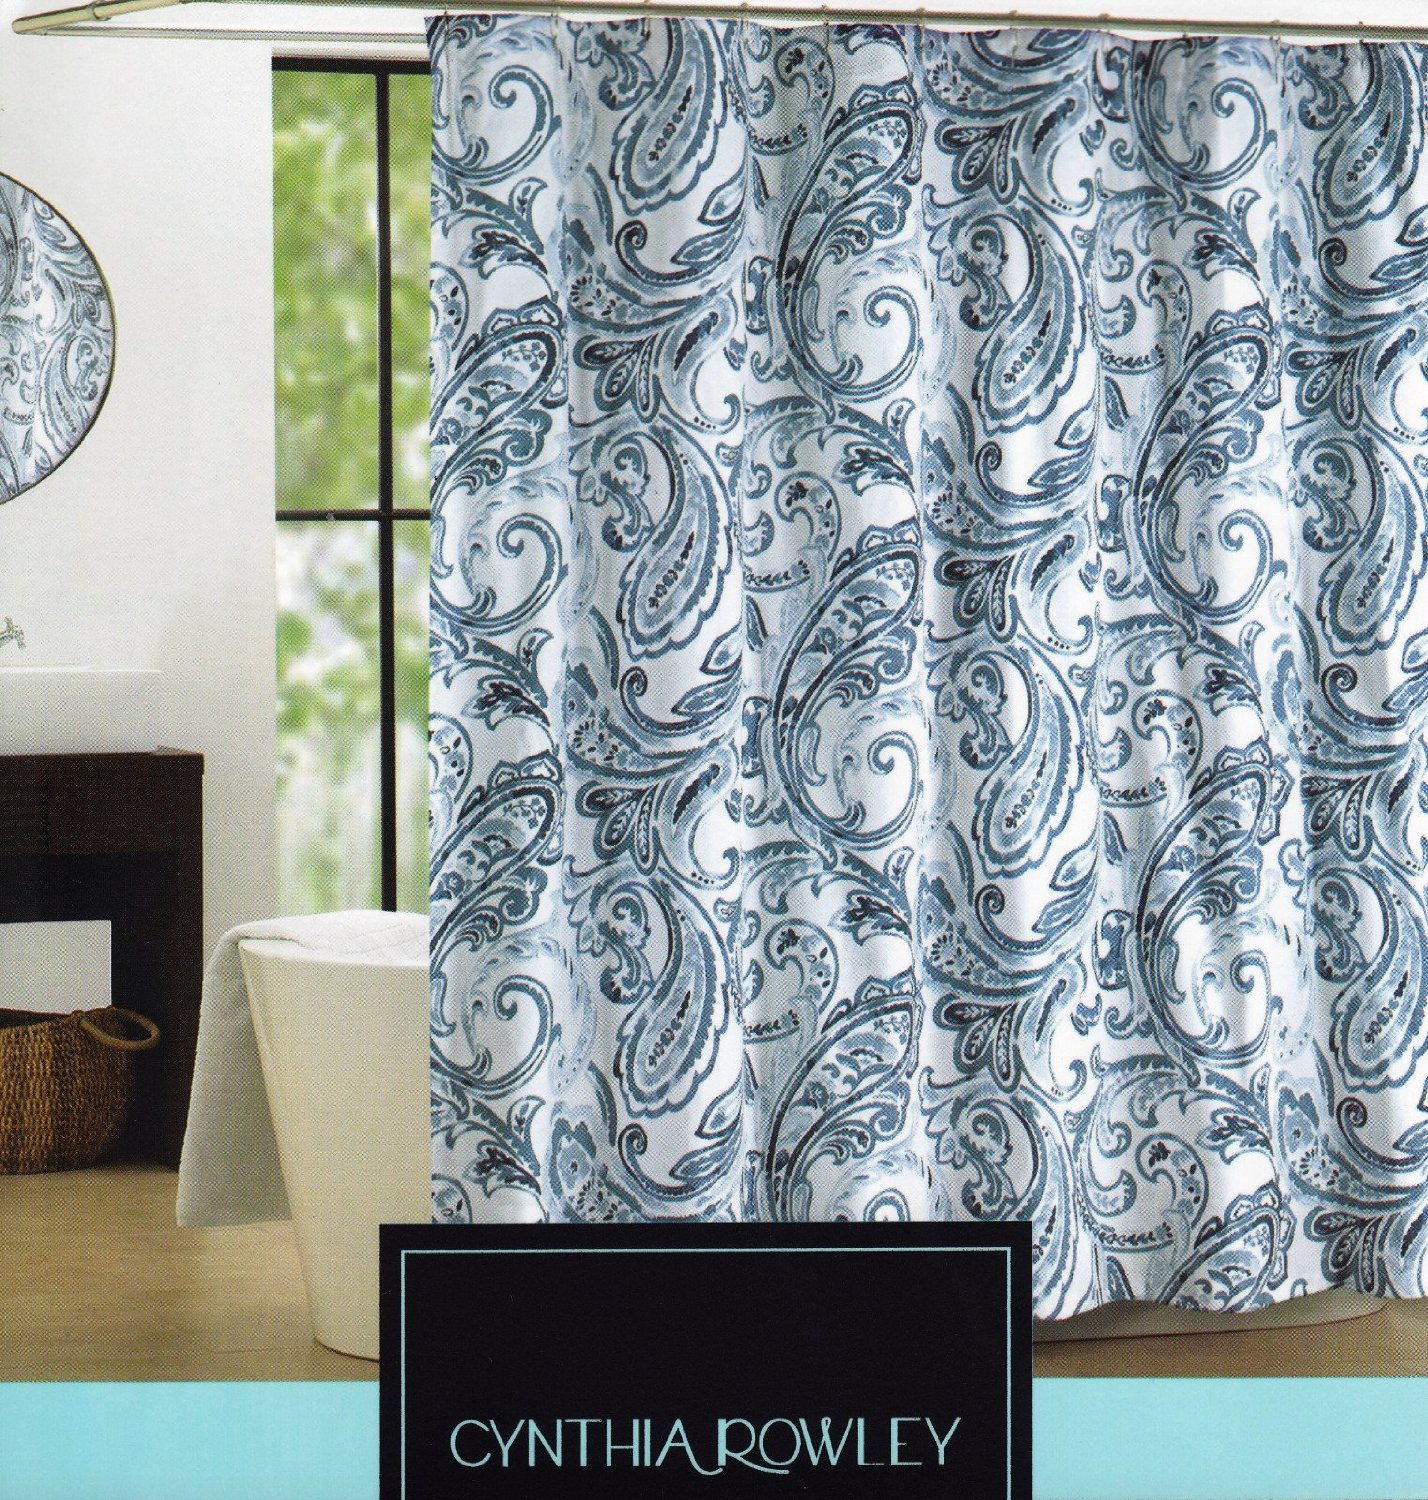 Cynthia Rowley Shower Curtain - Maeve Blue and White with Large Scale Paisley Print Fabric